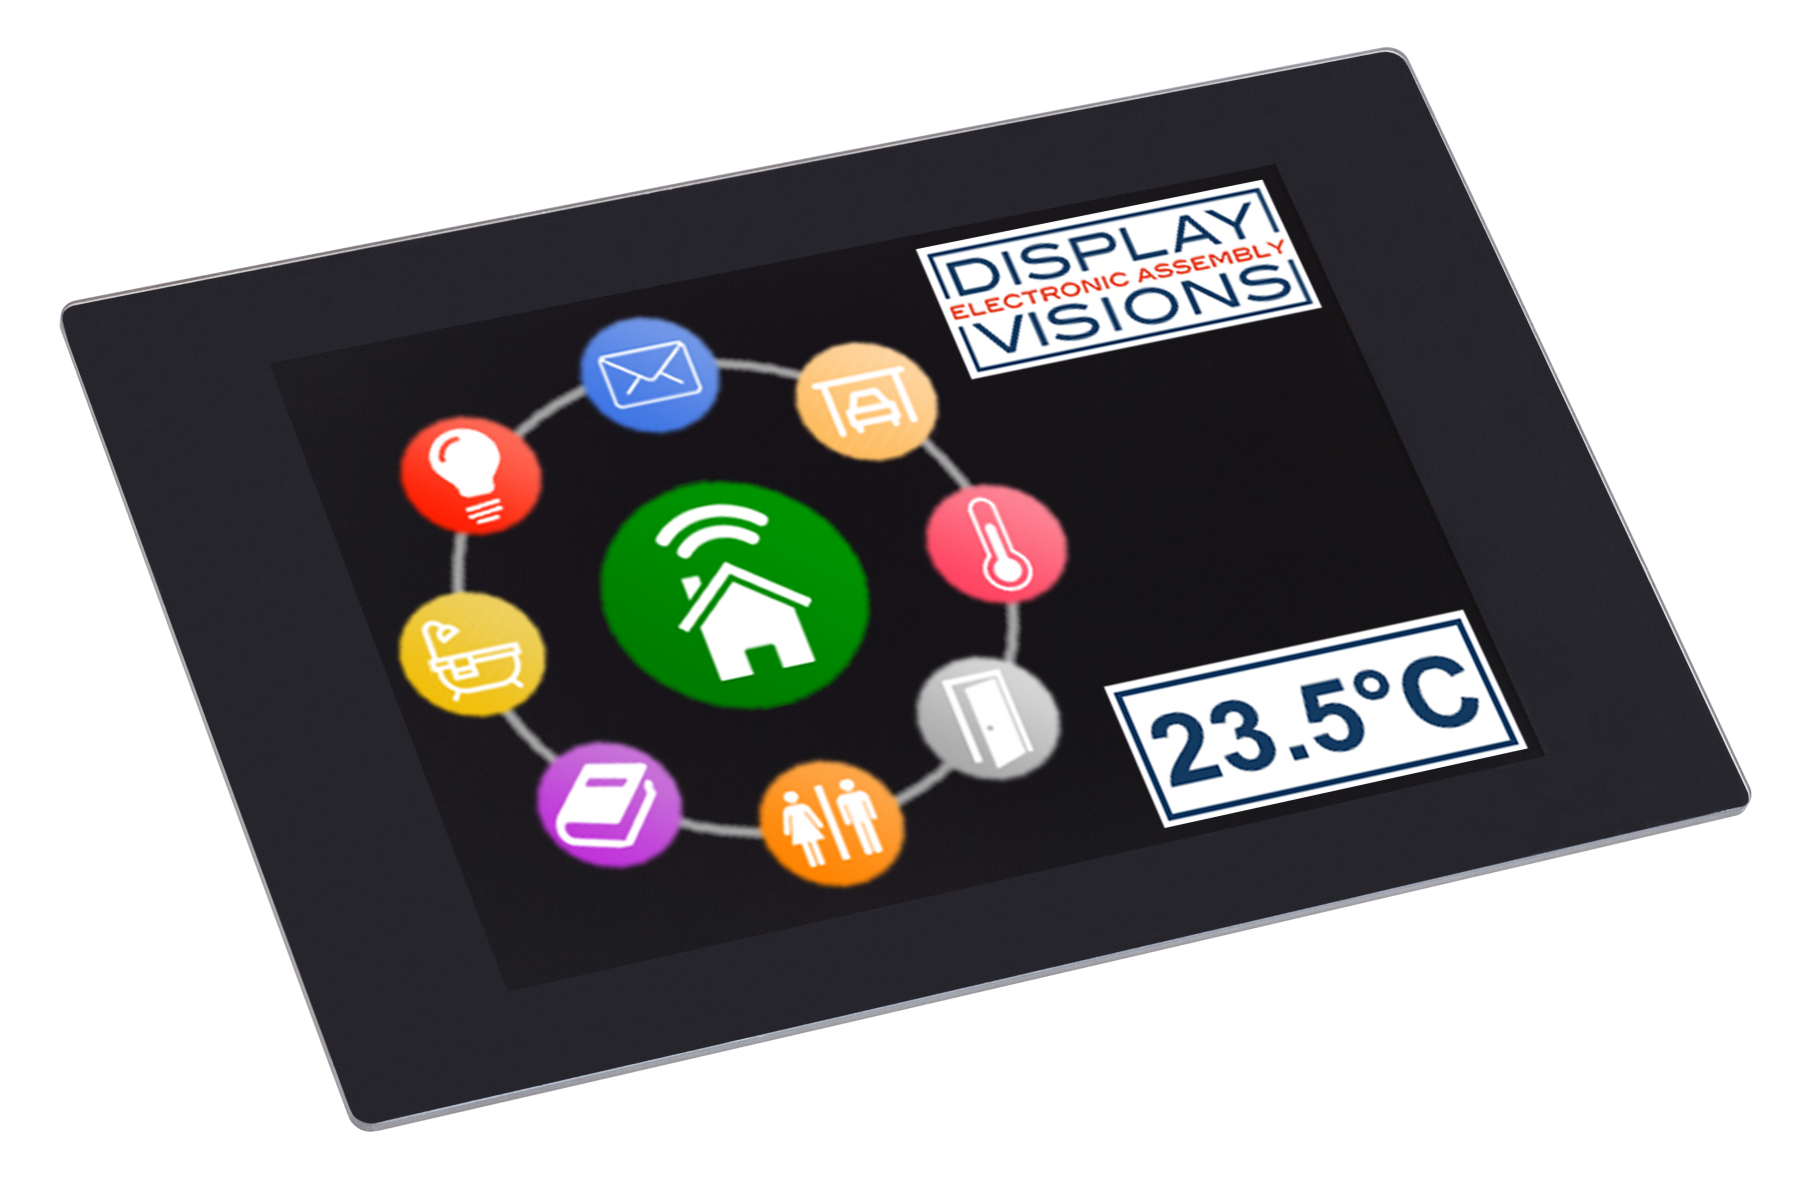 """3.5"""" uniTFT/IPS multifunctional Graphic Display + PCAP touch"""